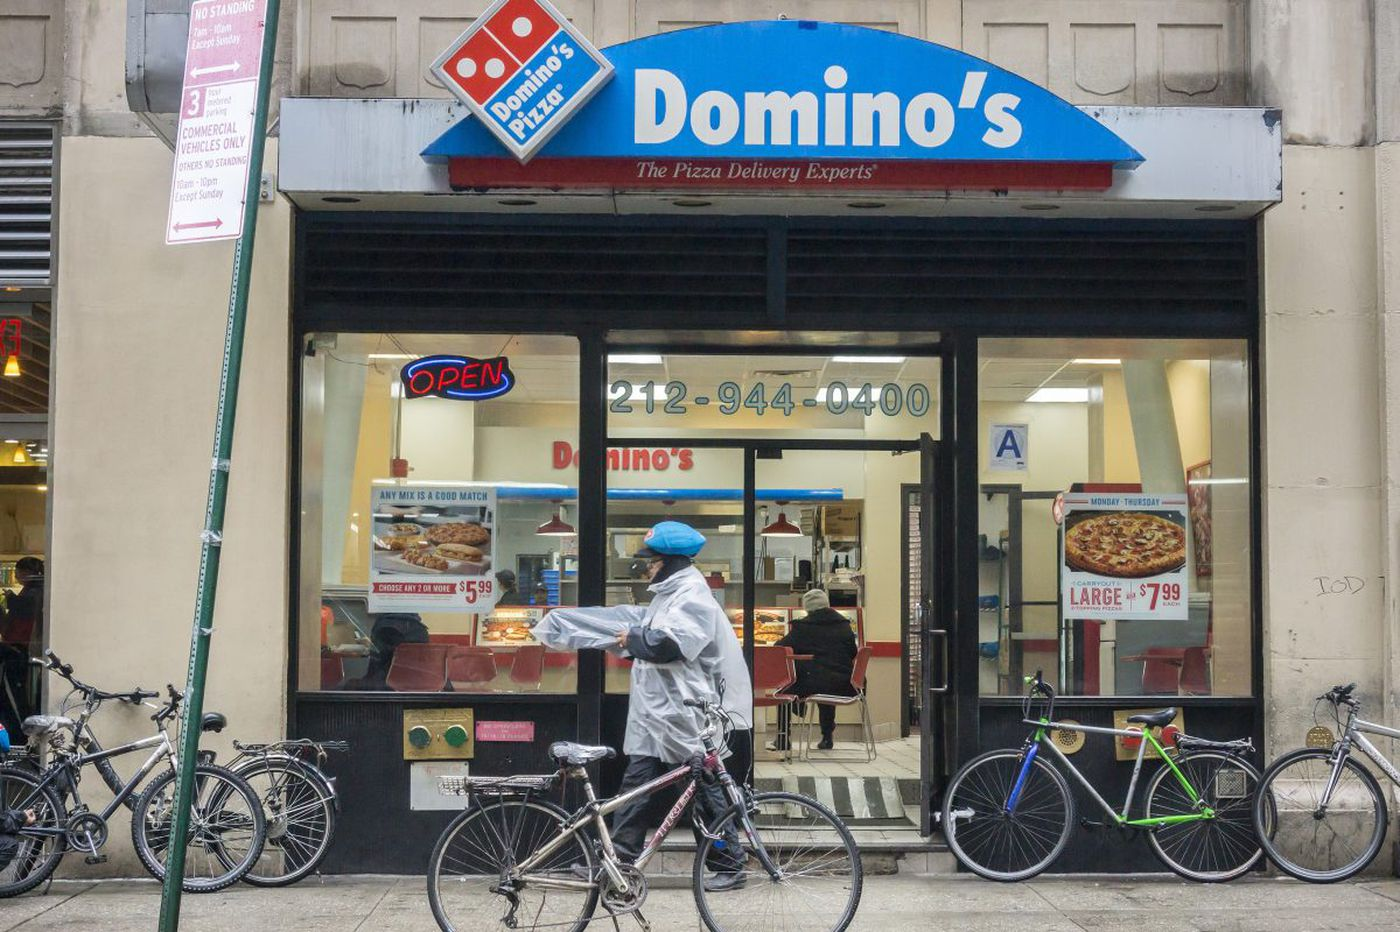 Domino's experimenting with driver-less pizza delivery